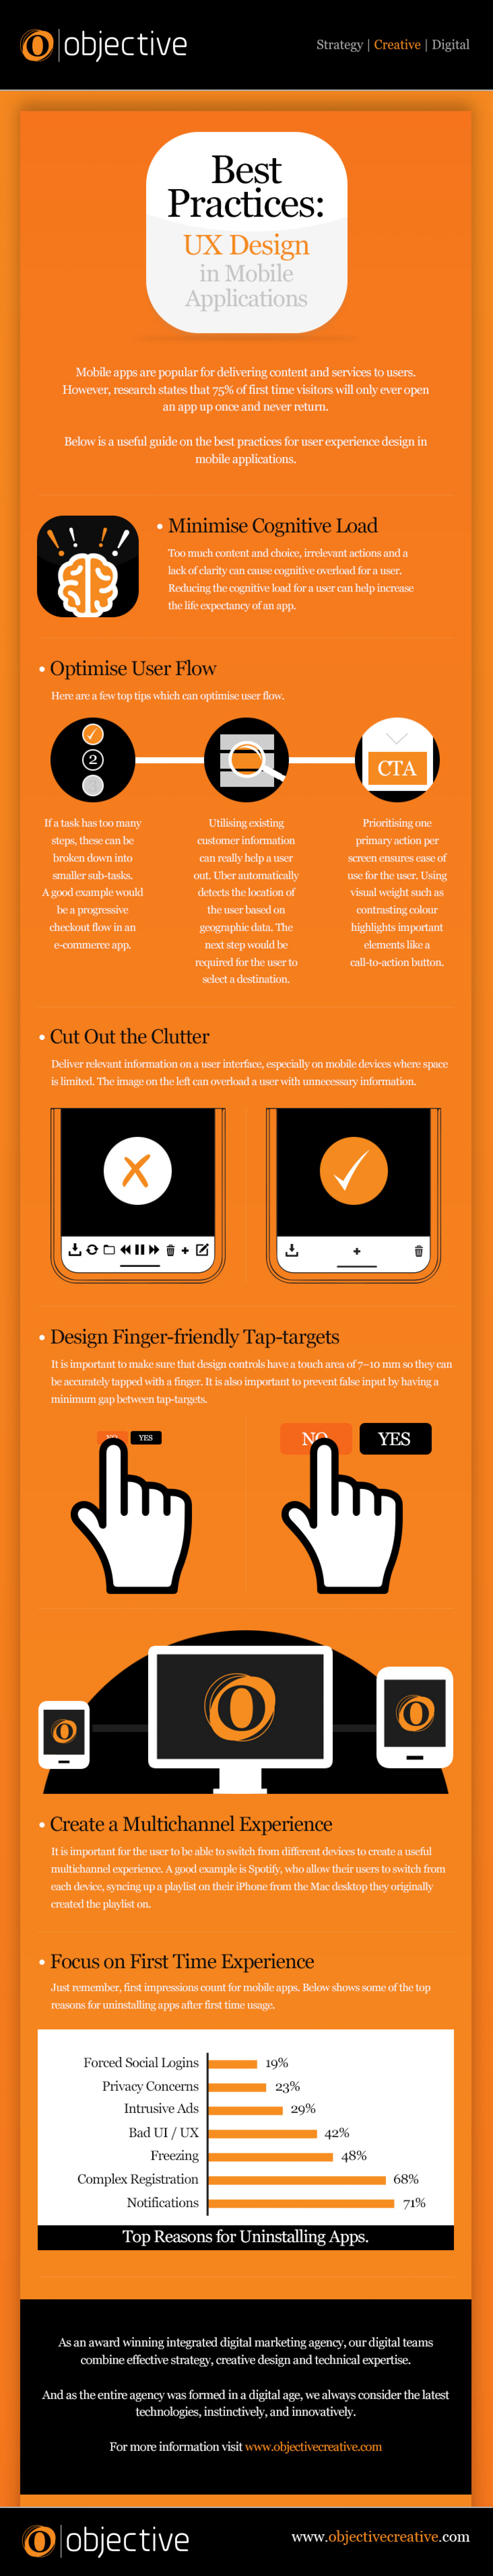 Best Practices: UX Design in Mobile Applications Infographic